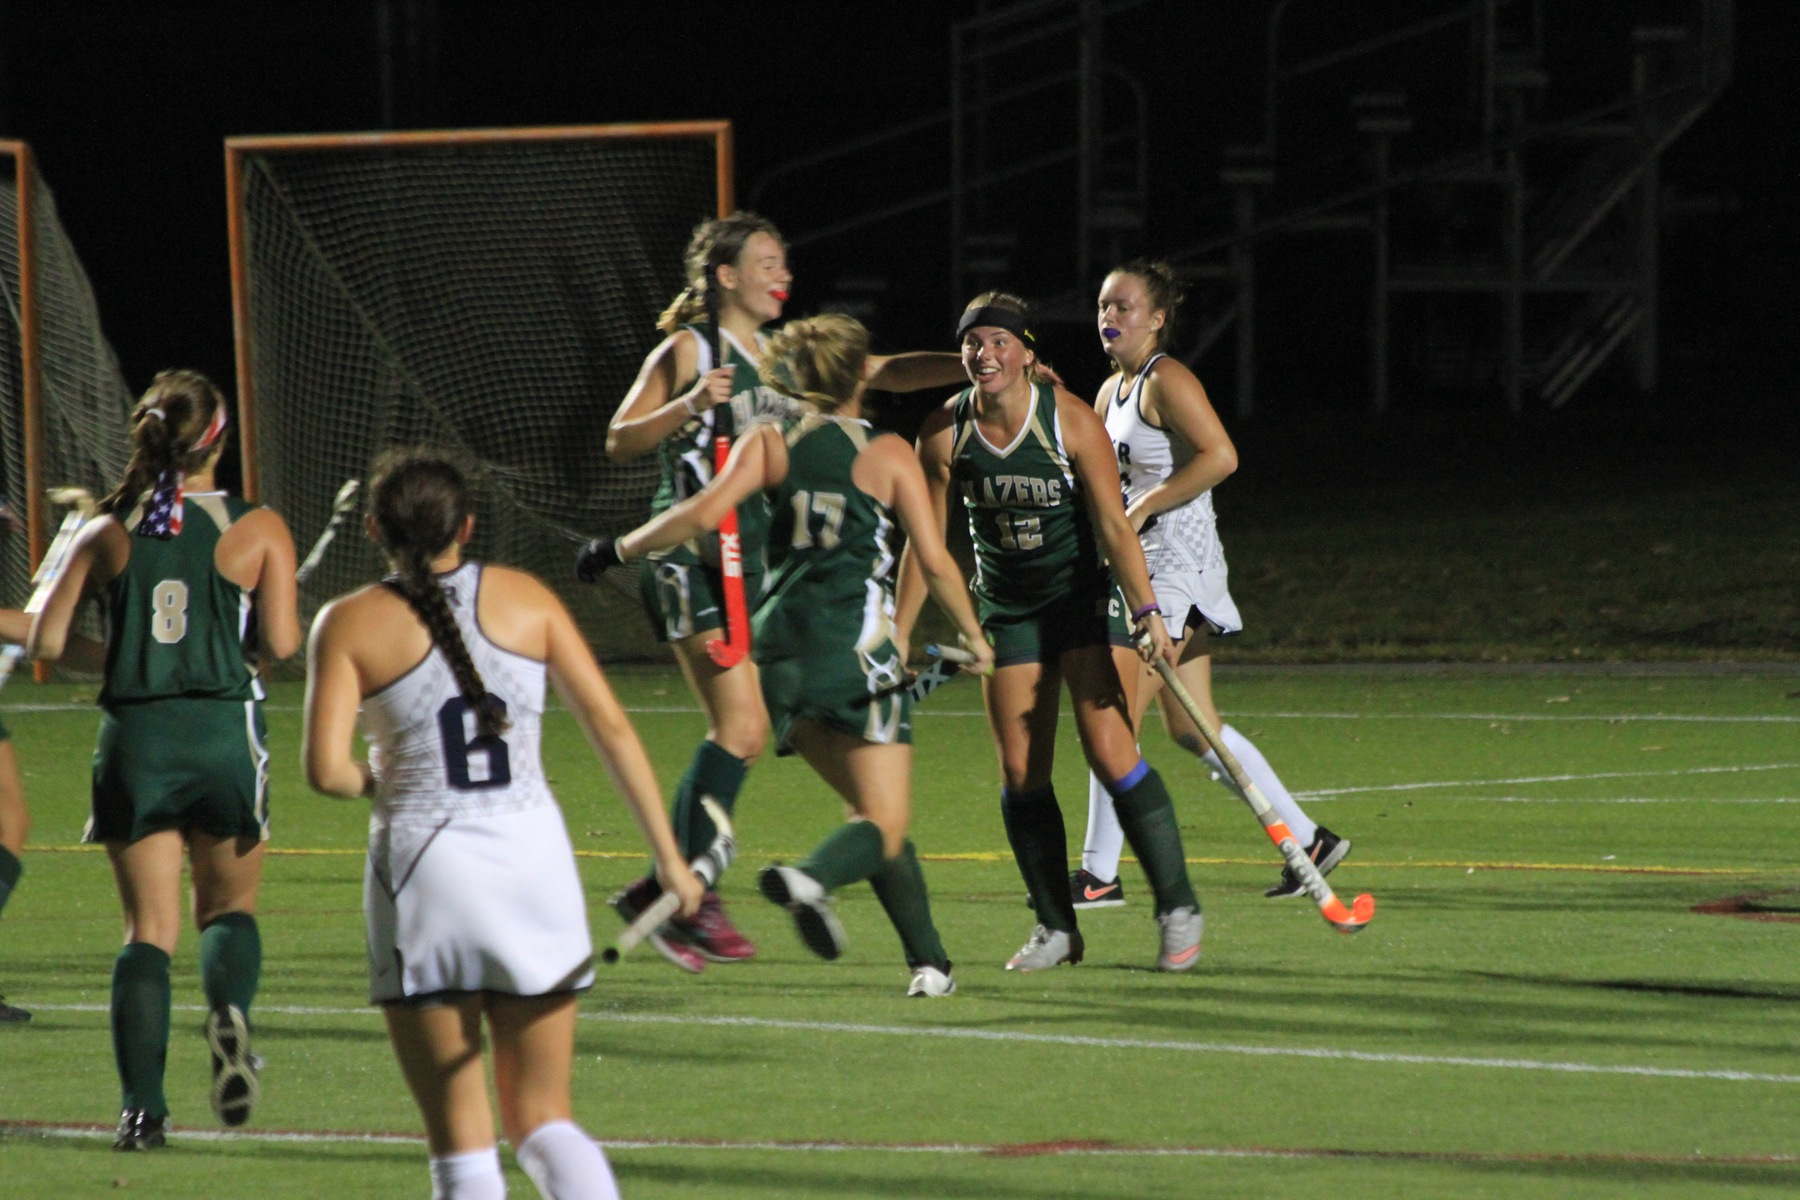 Field Hockey Defeat Rivier For First Win